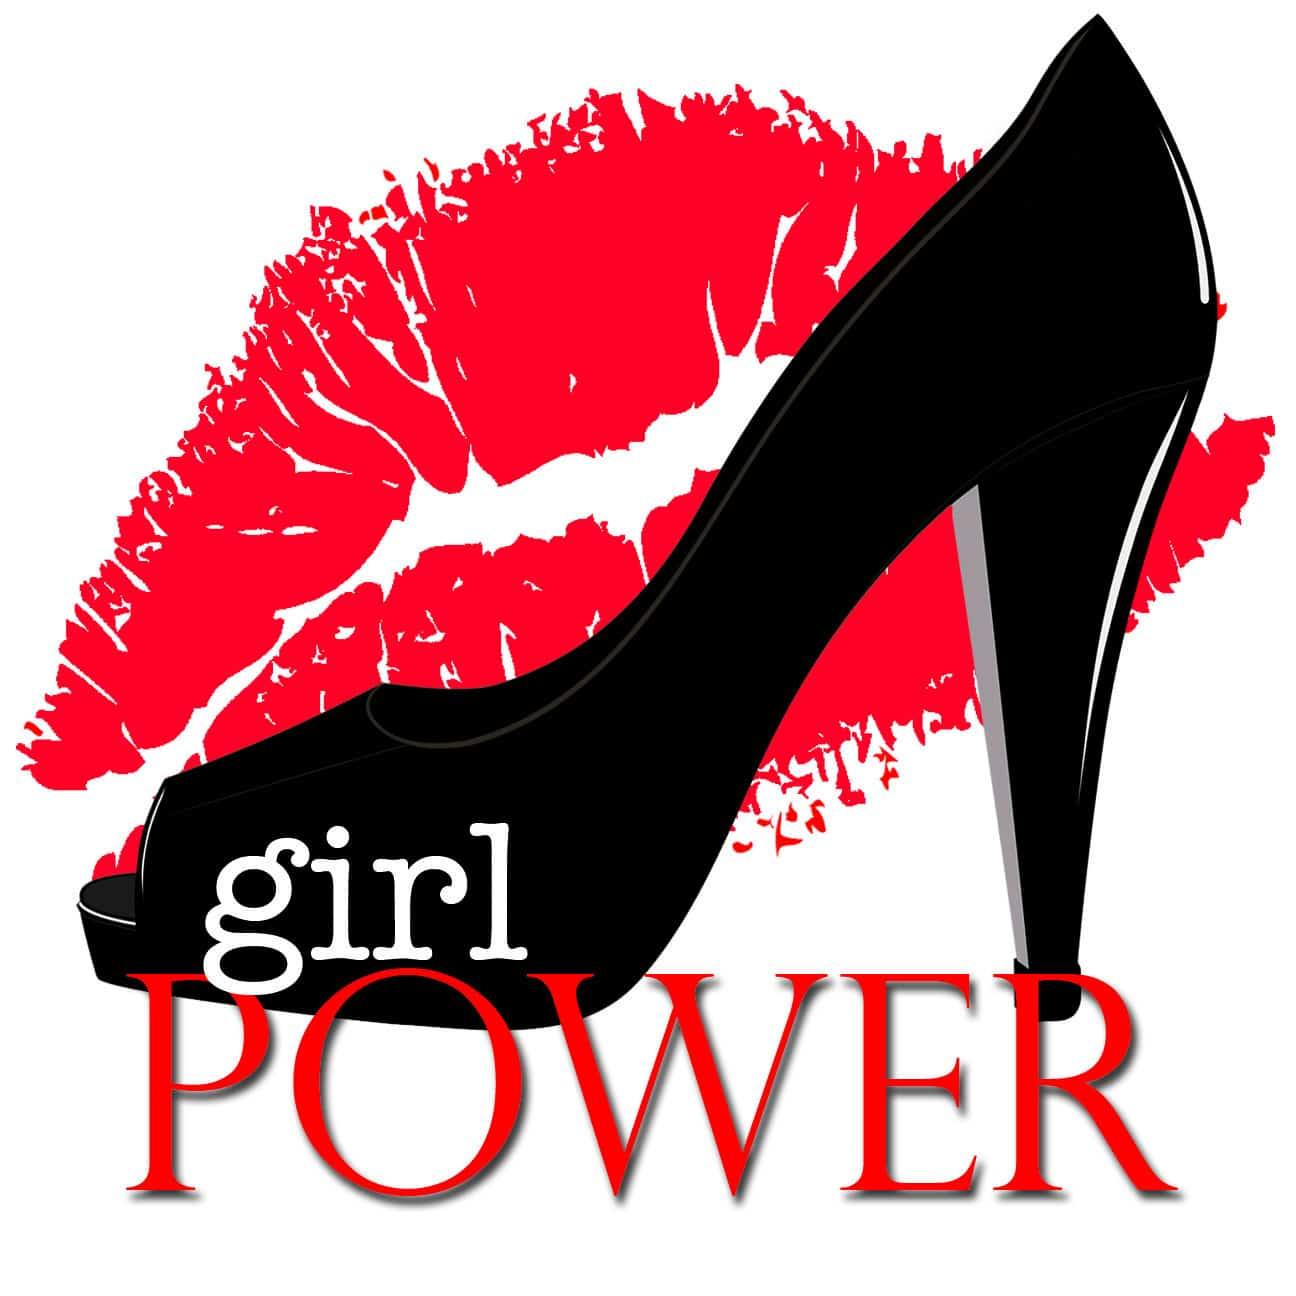 girl power - empowering women